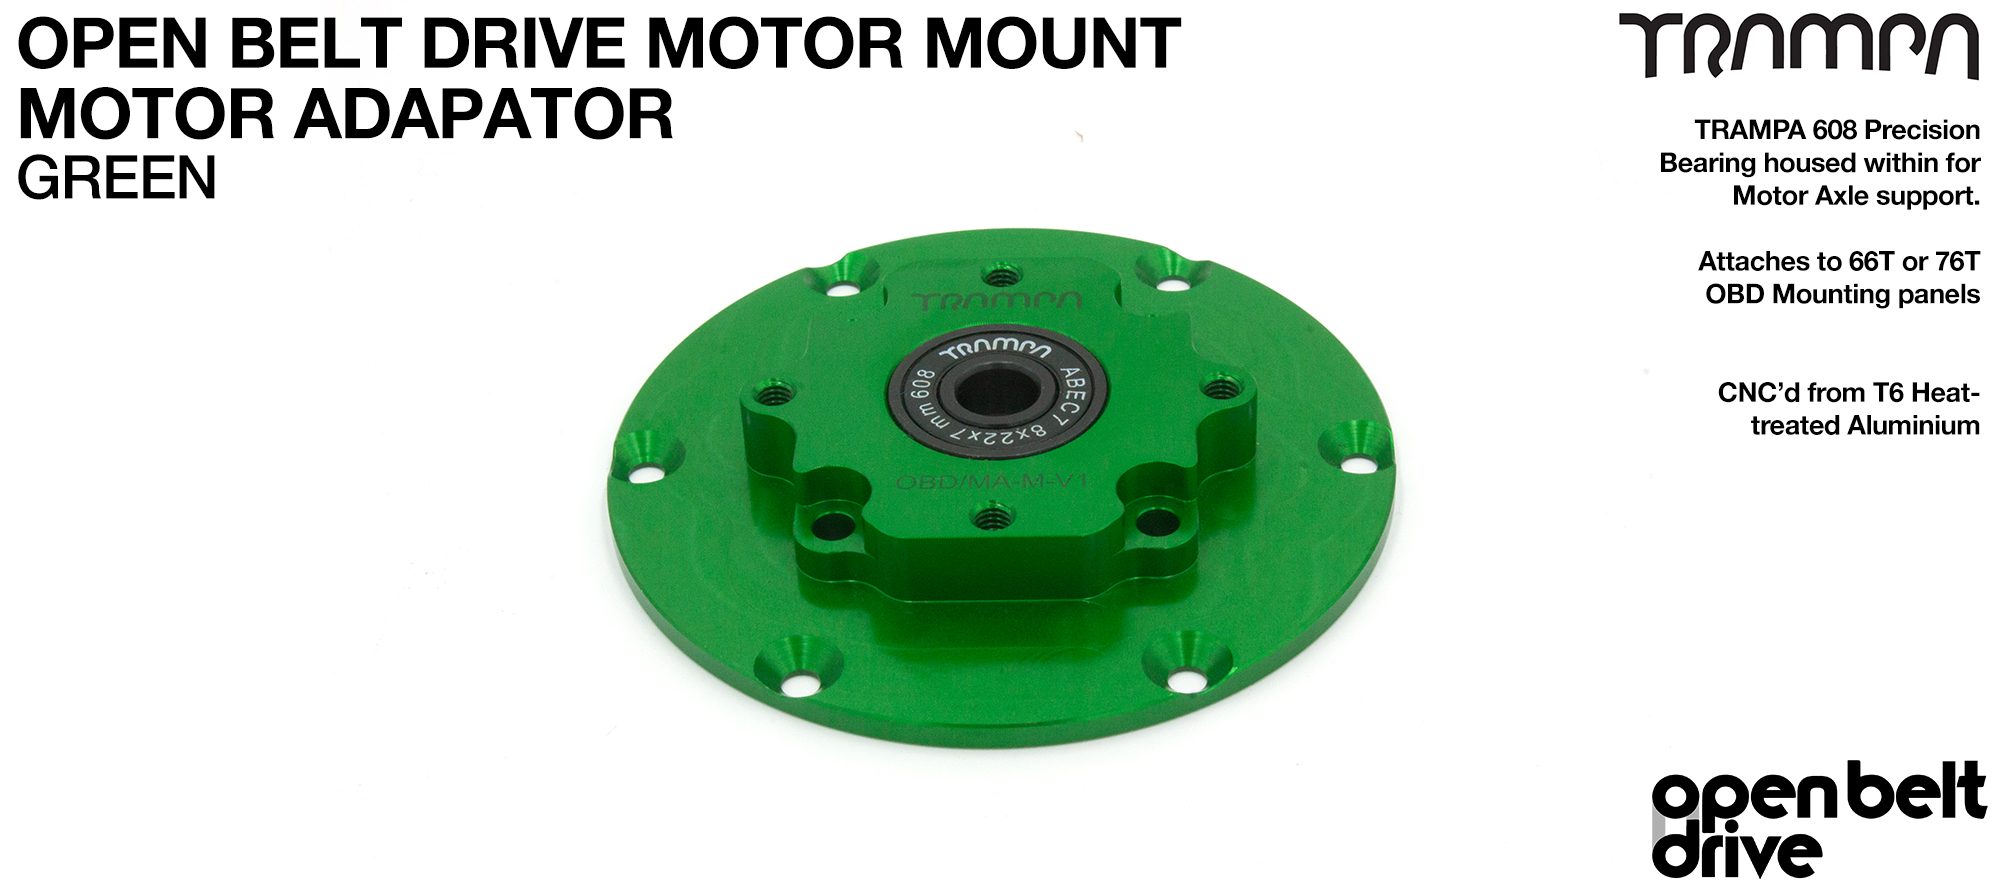 GREEN OBD Motor Adaptors with Housed Bearing